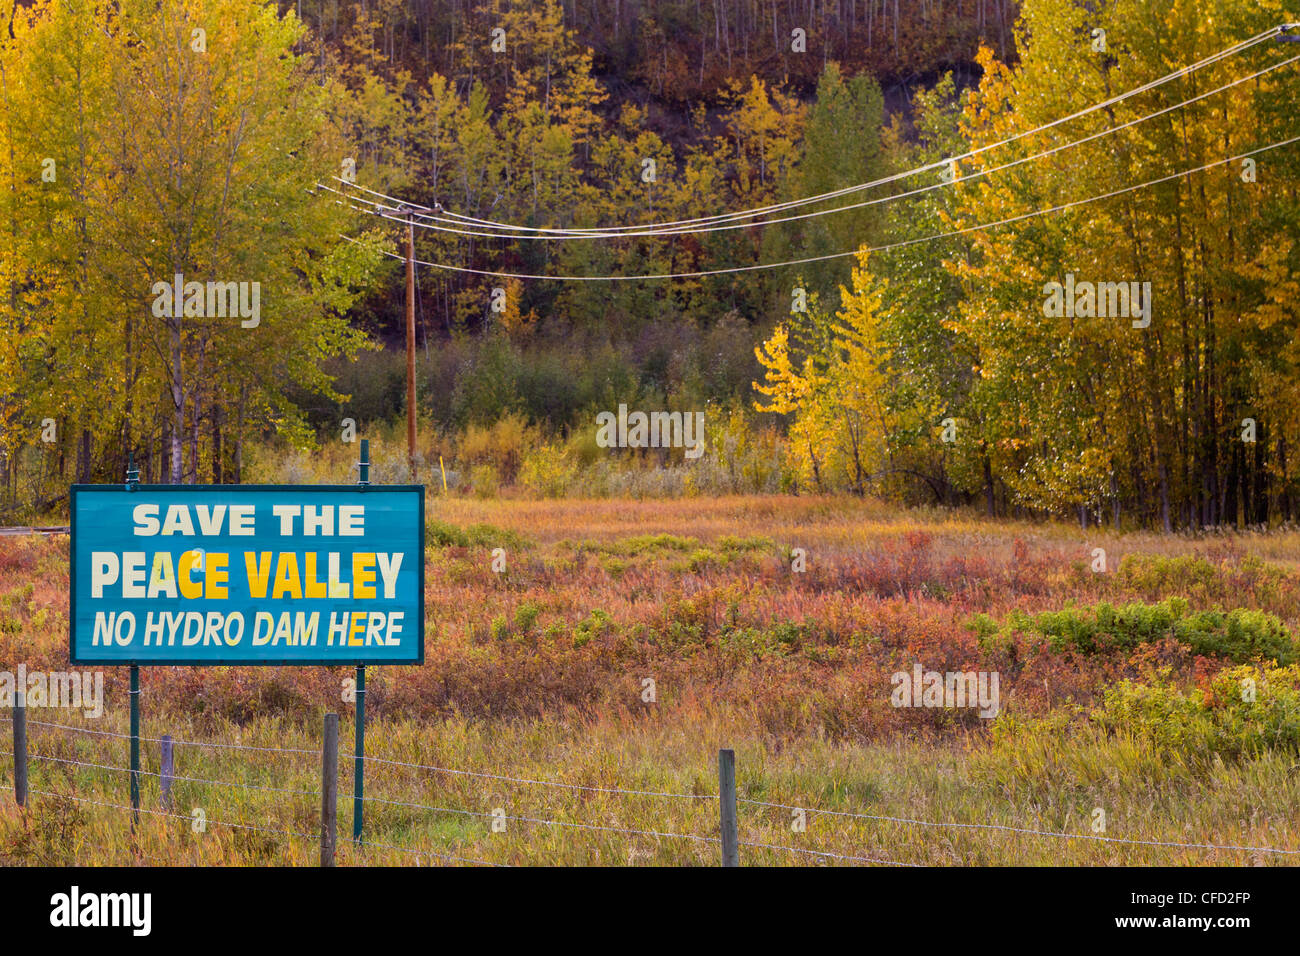 Sign protesting Site C dam proposed for the Peace River, along Highway 29 in the Peace Valley, British Columbia, Stock Photo